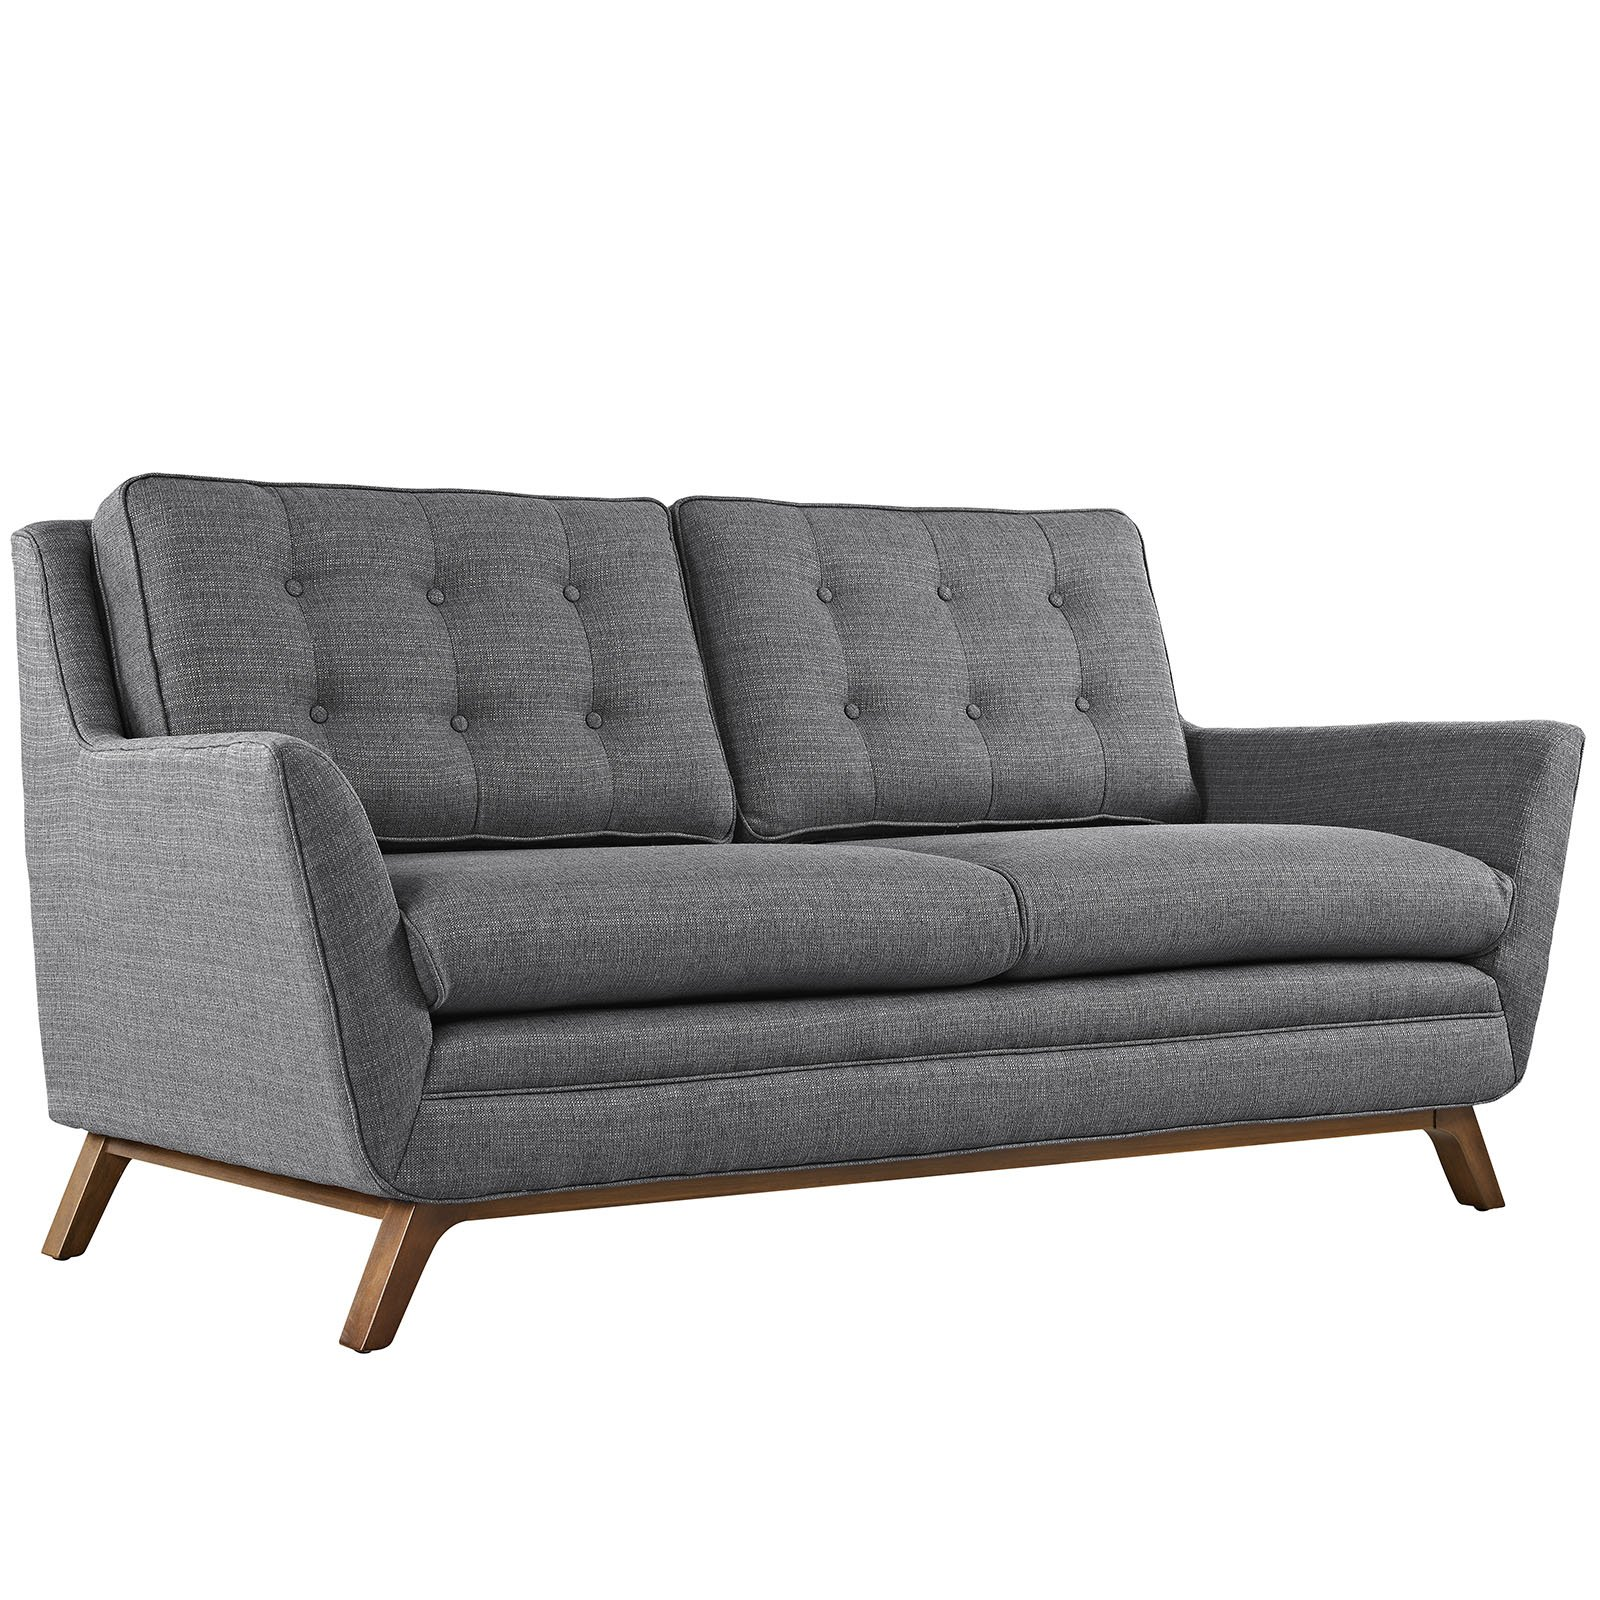 Modway Beguile Mid-Century Modern Loveseat With Upholstered Fabric In Gray by Modway